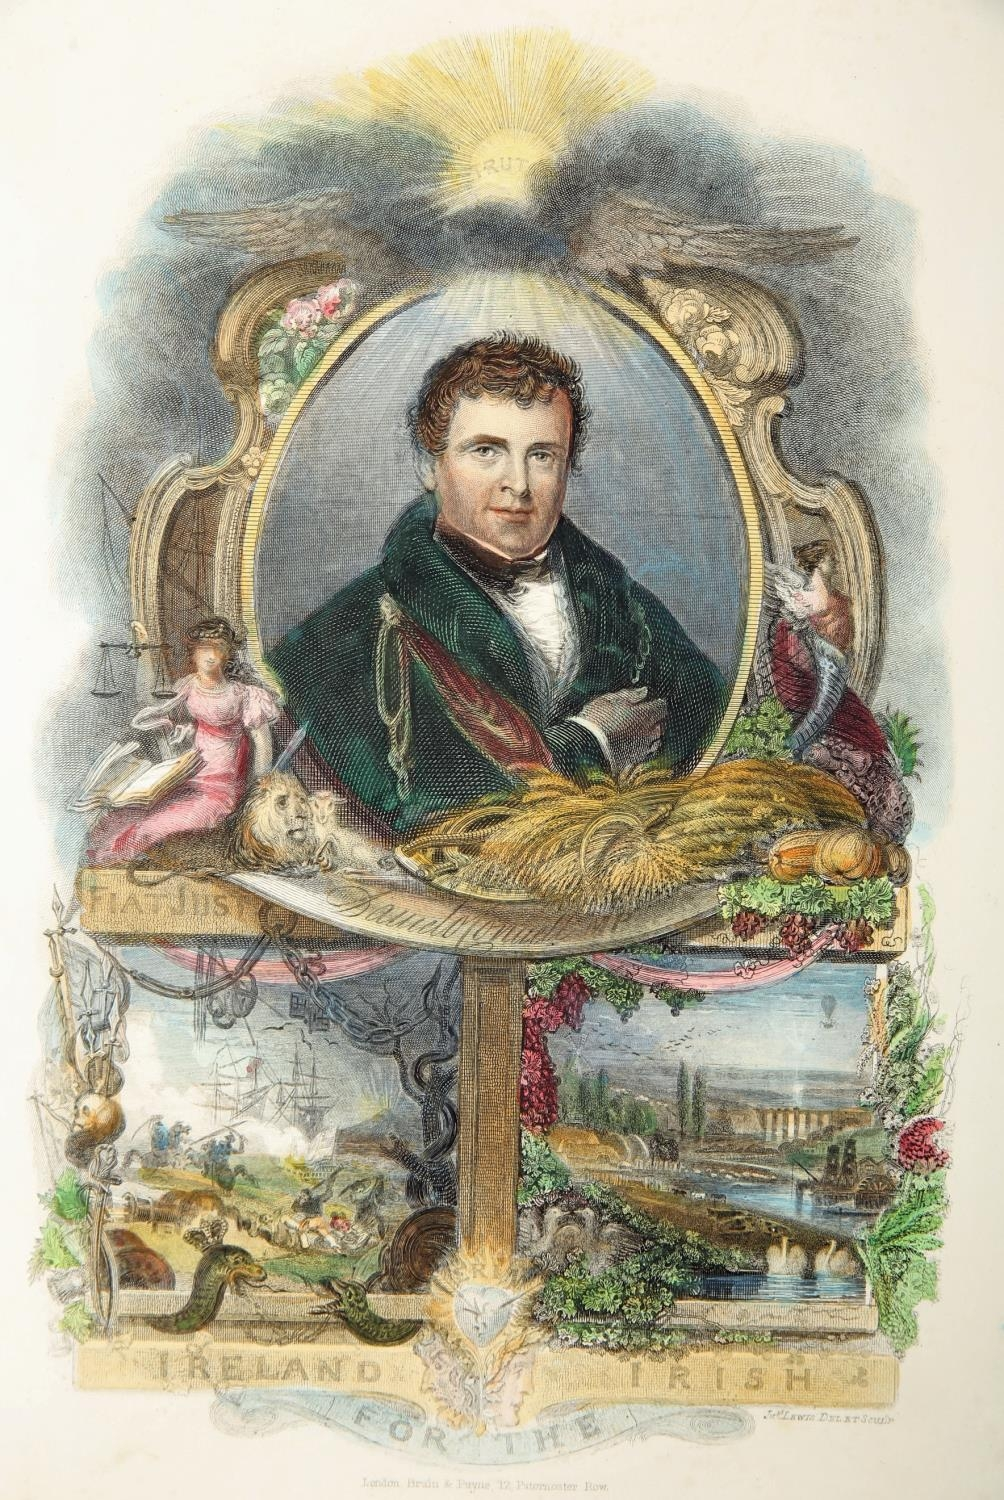 Daniel O'Connell, cartoons and portrait engravings. A hand-coloured engraved portrait of Daniel O' - Image 2 of 5